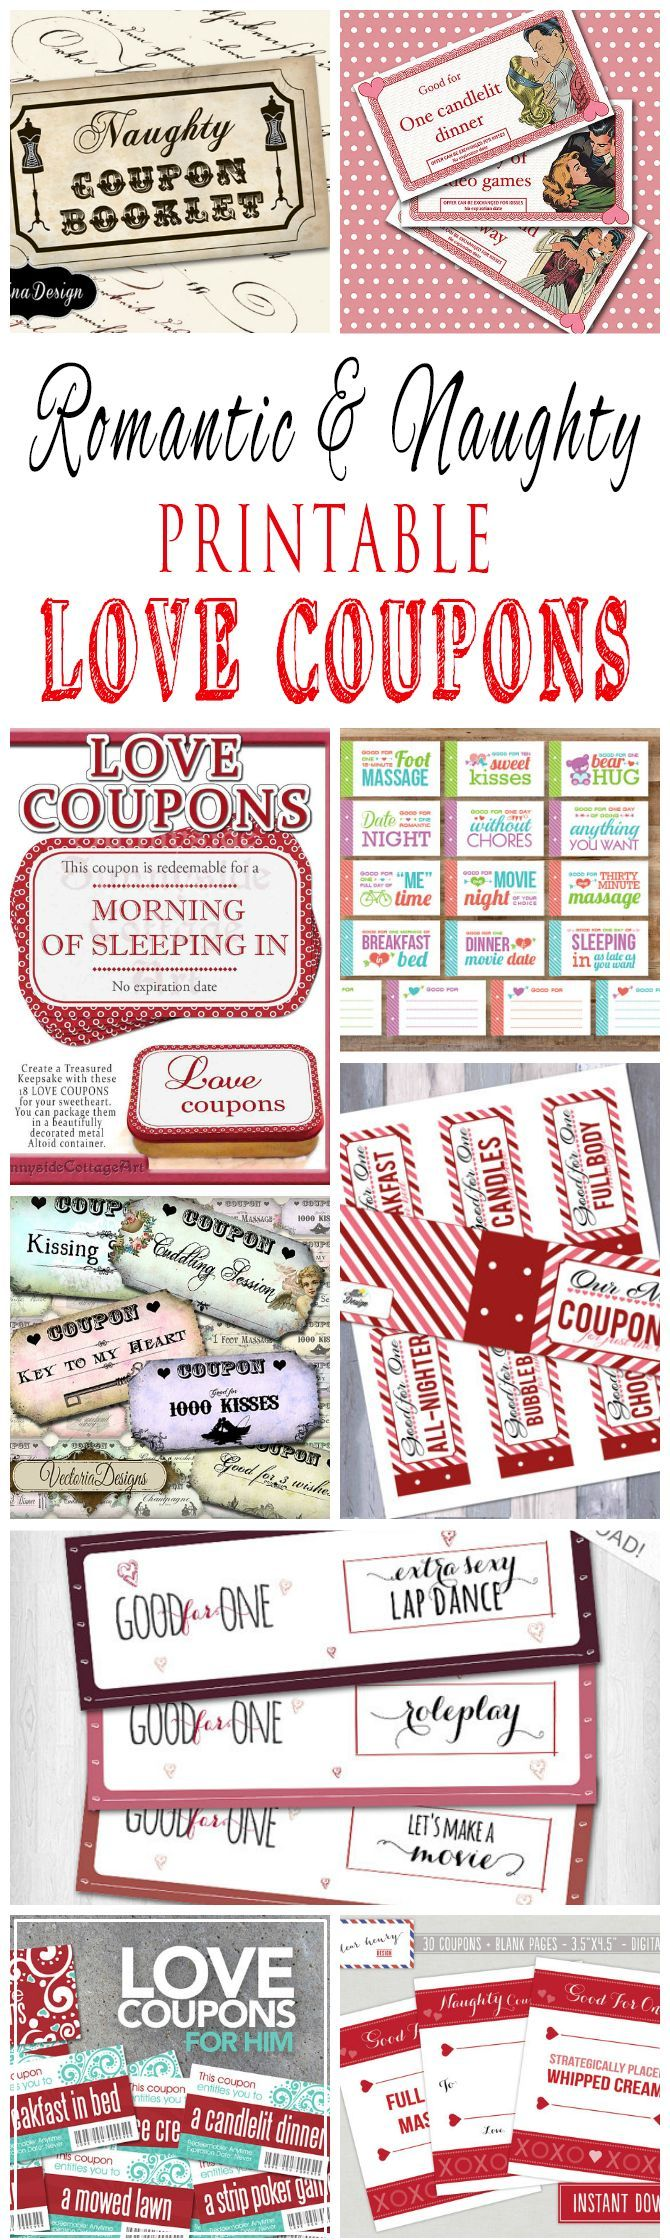 Romantic And Naughty Printable Love Coupons For Boyfriend Or Husband                                                                                                                                                                                 More